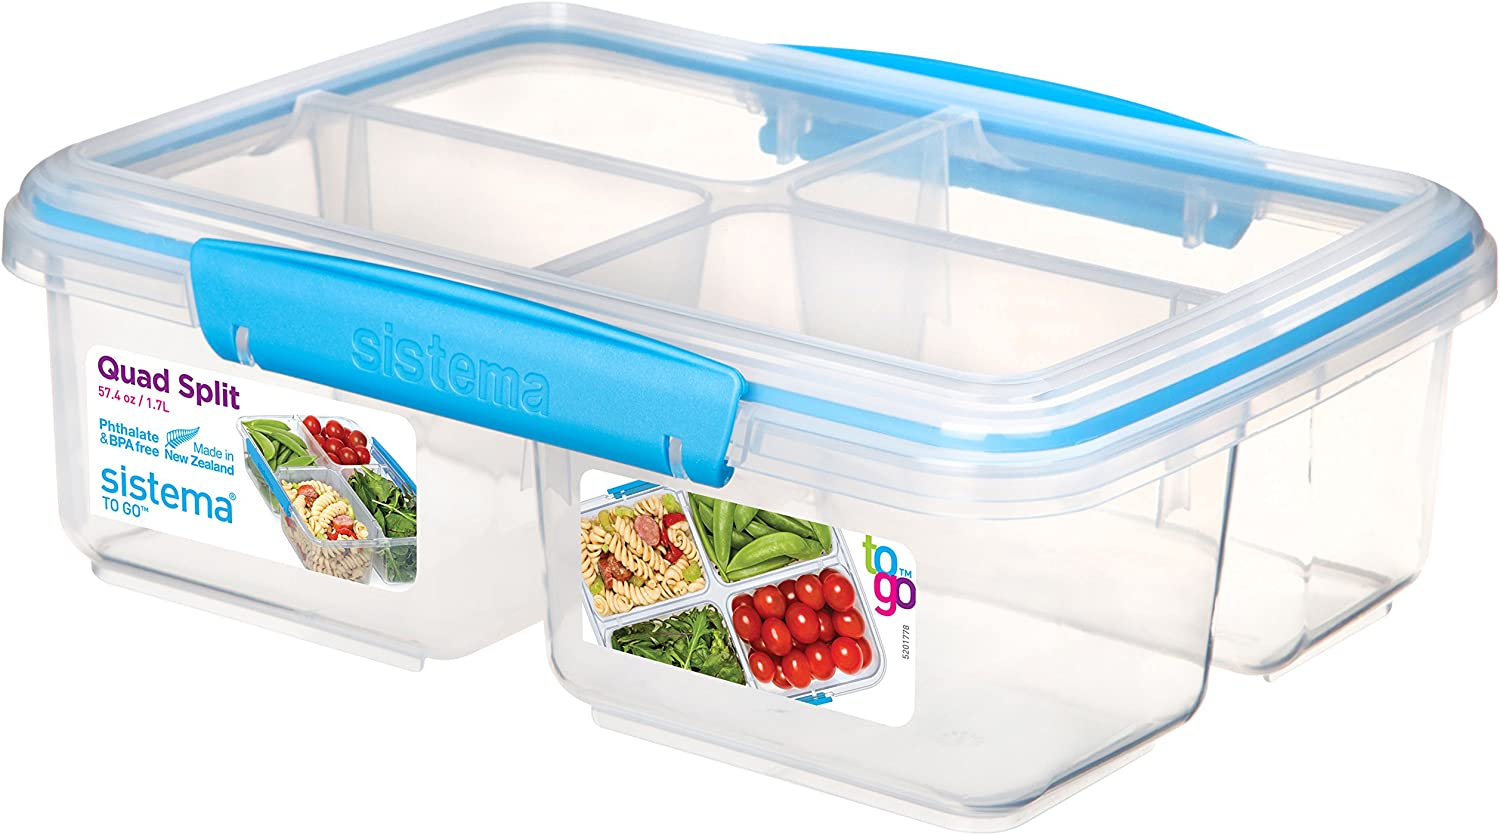 Sistema 1007708 To Go Quad Split Food Storage Container, Clear with Coloured Clips, 1.7 L